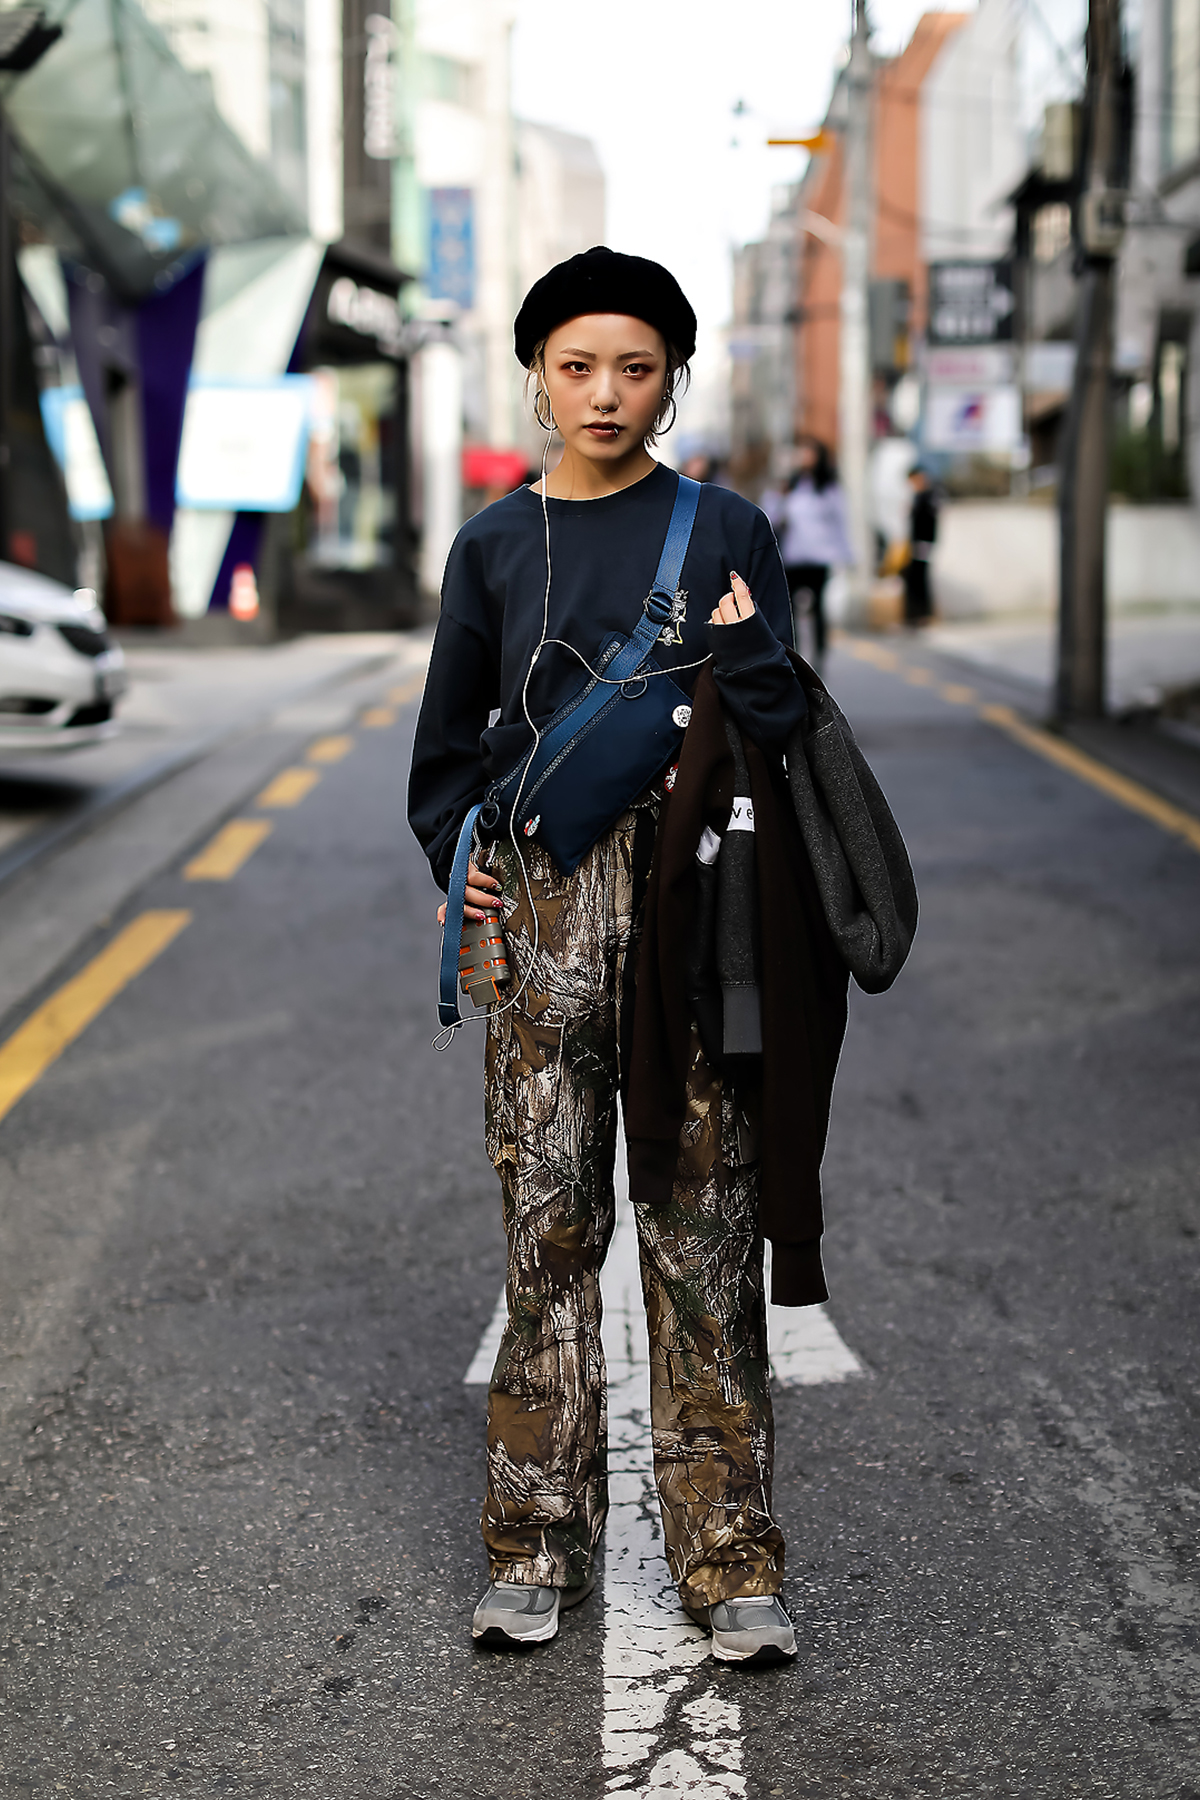 Women fall street style fourth week of october 2018 in seoul 14